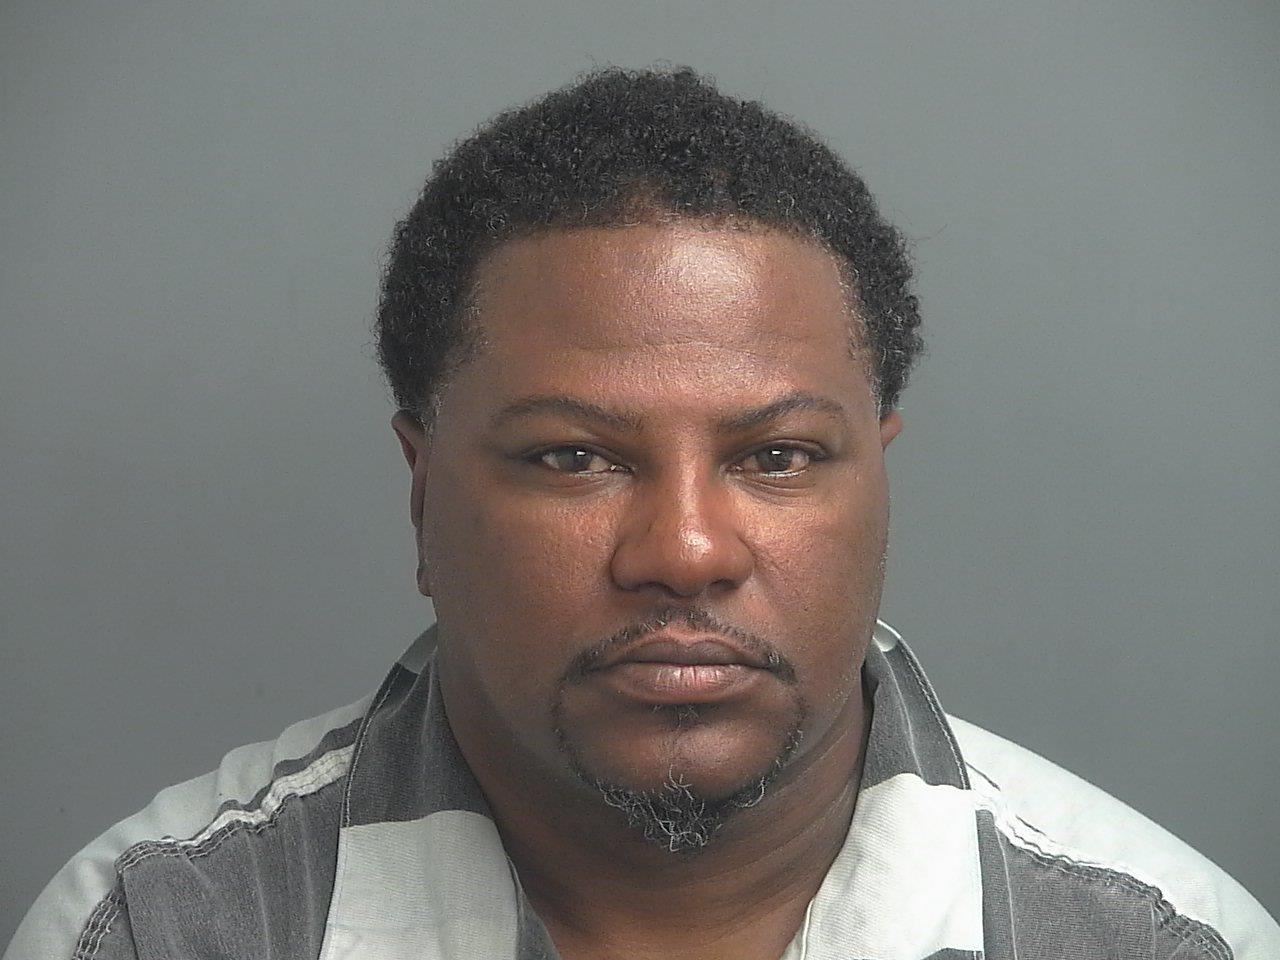 CHRISTOPHER DONELL CRAWFORD